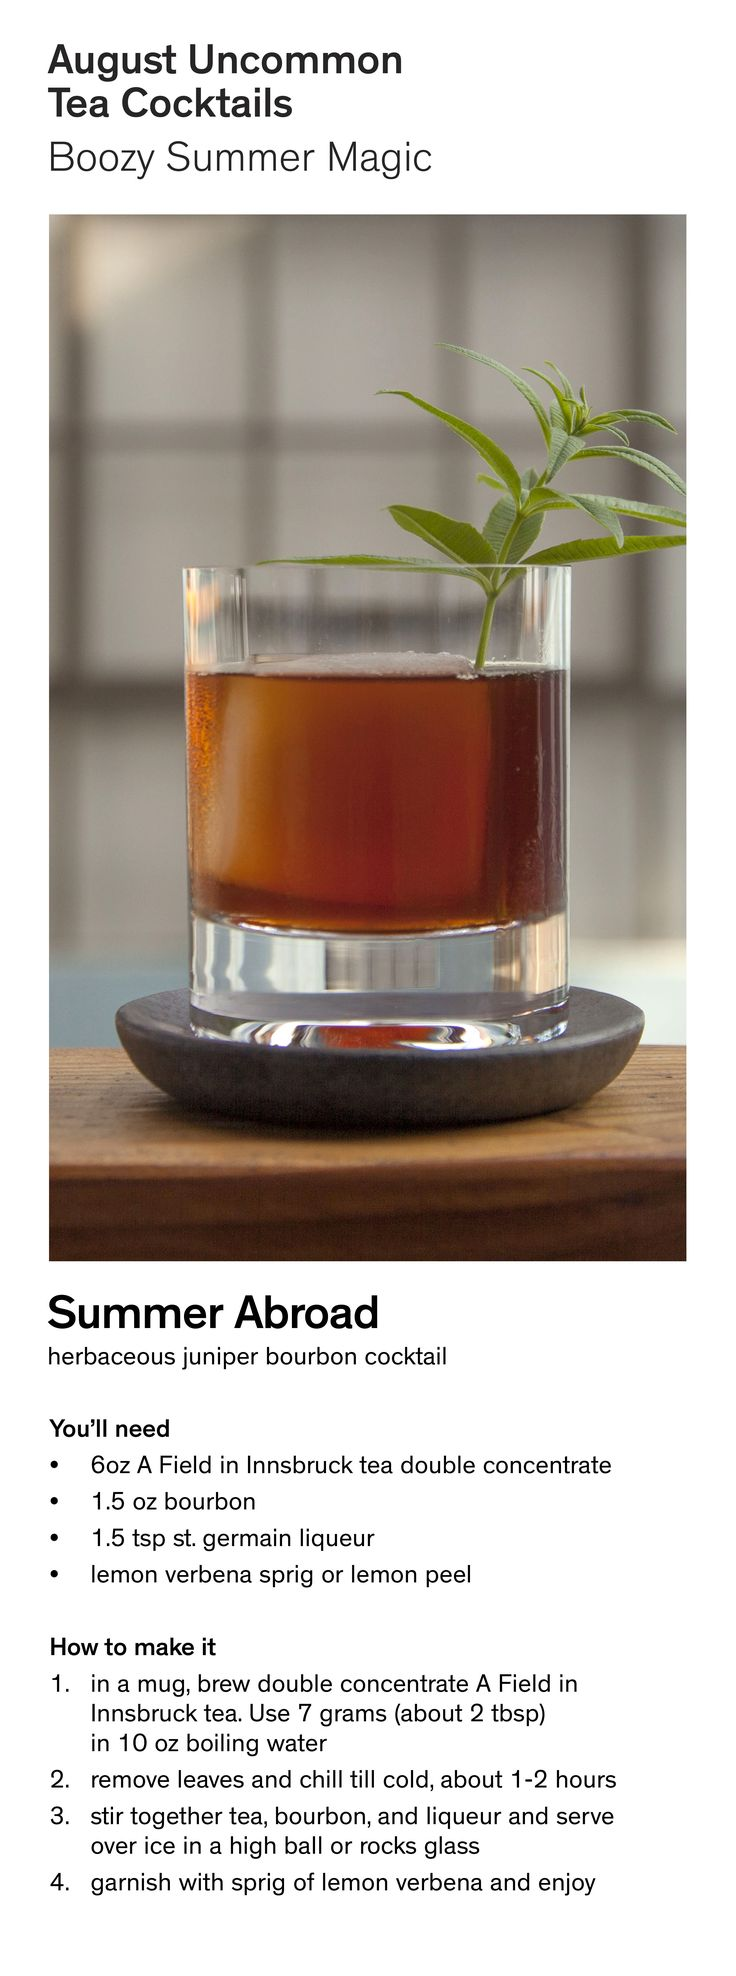 Make the Summer Abroad - an August Uncommon Tea Cocktail.